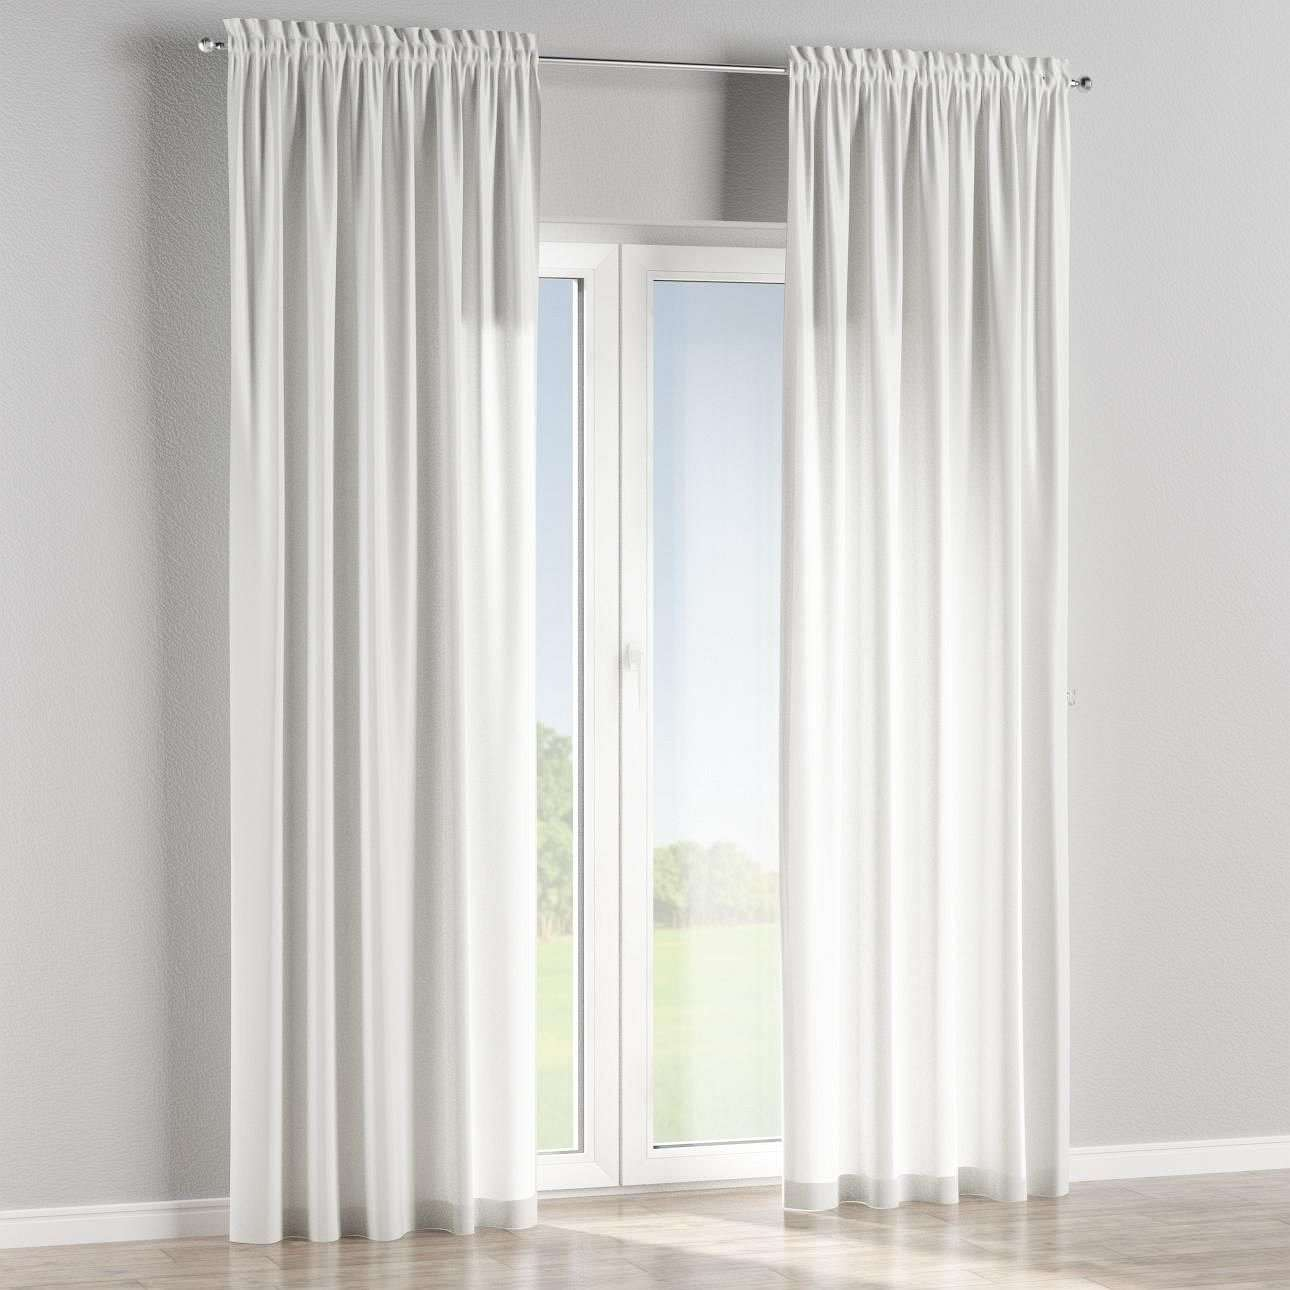 Slot and frill curtains in collection Milano, fabric: 150-21